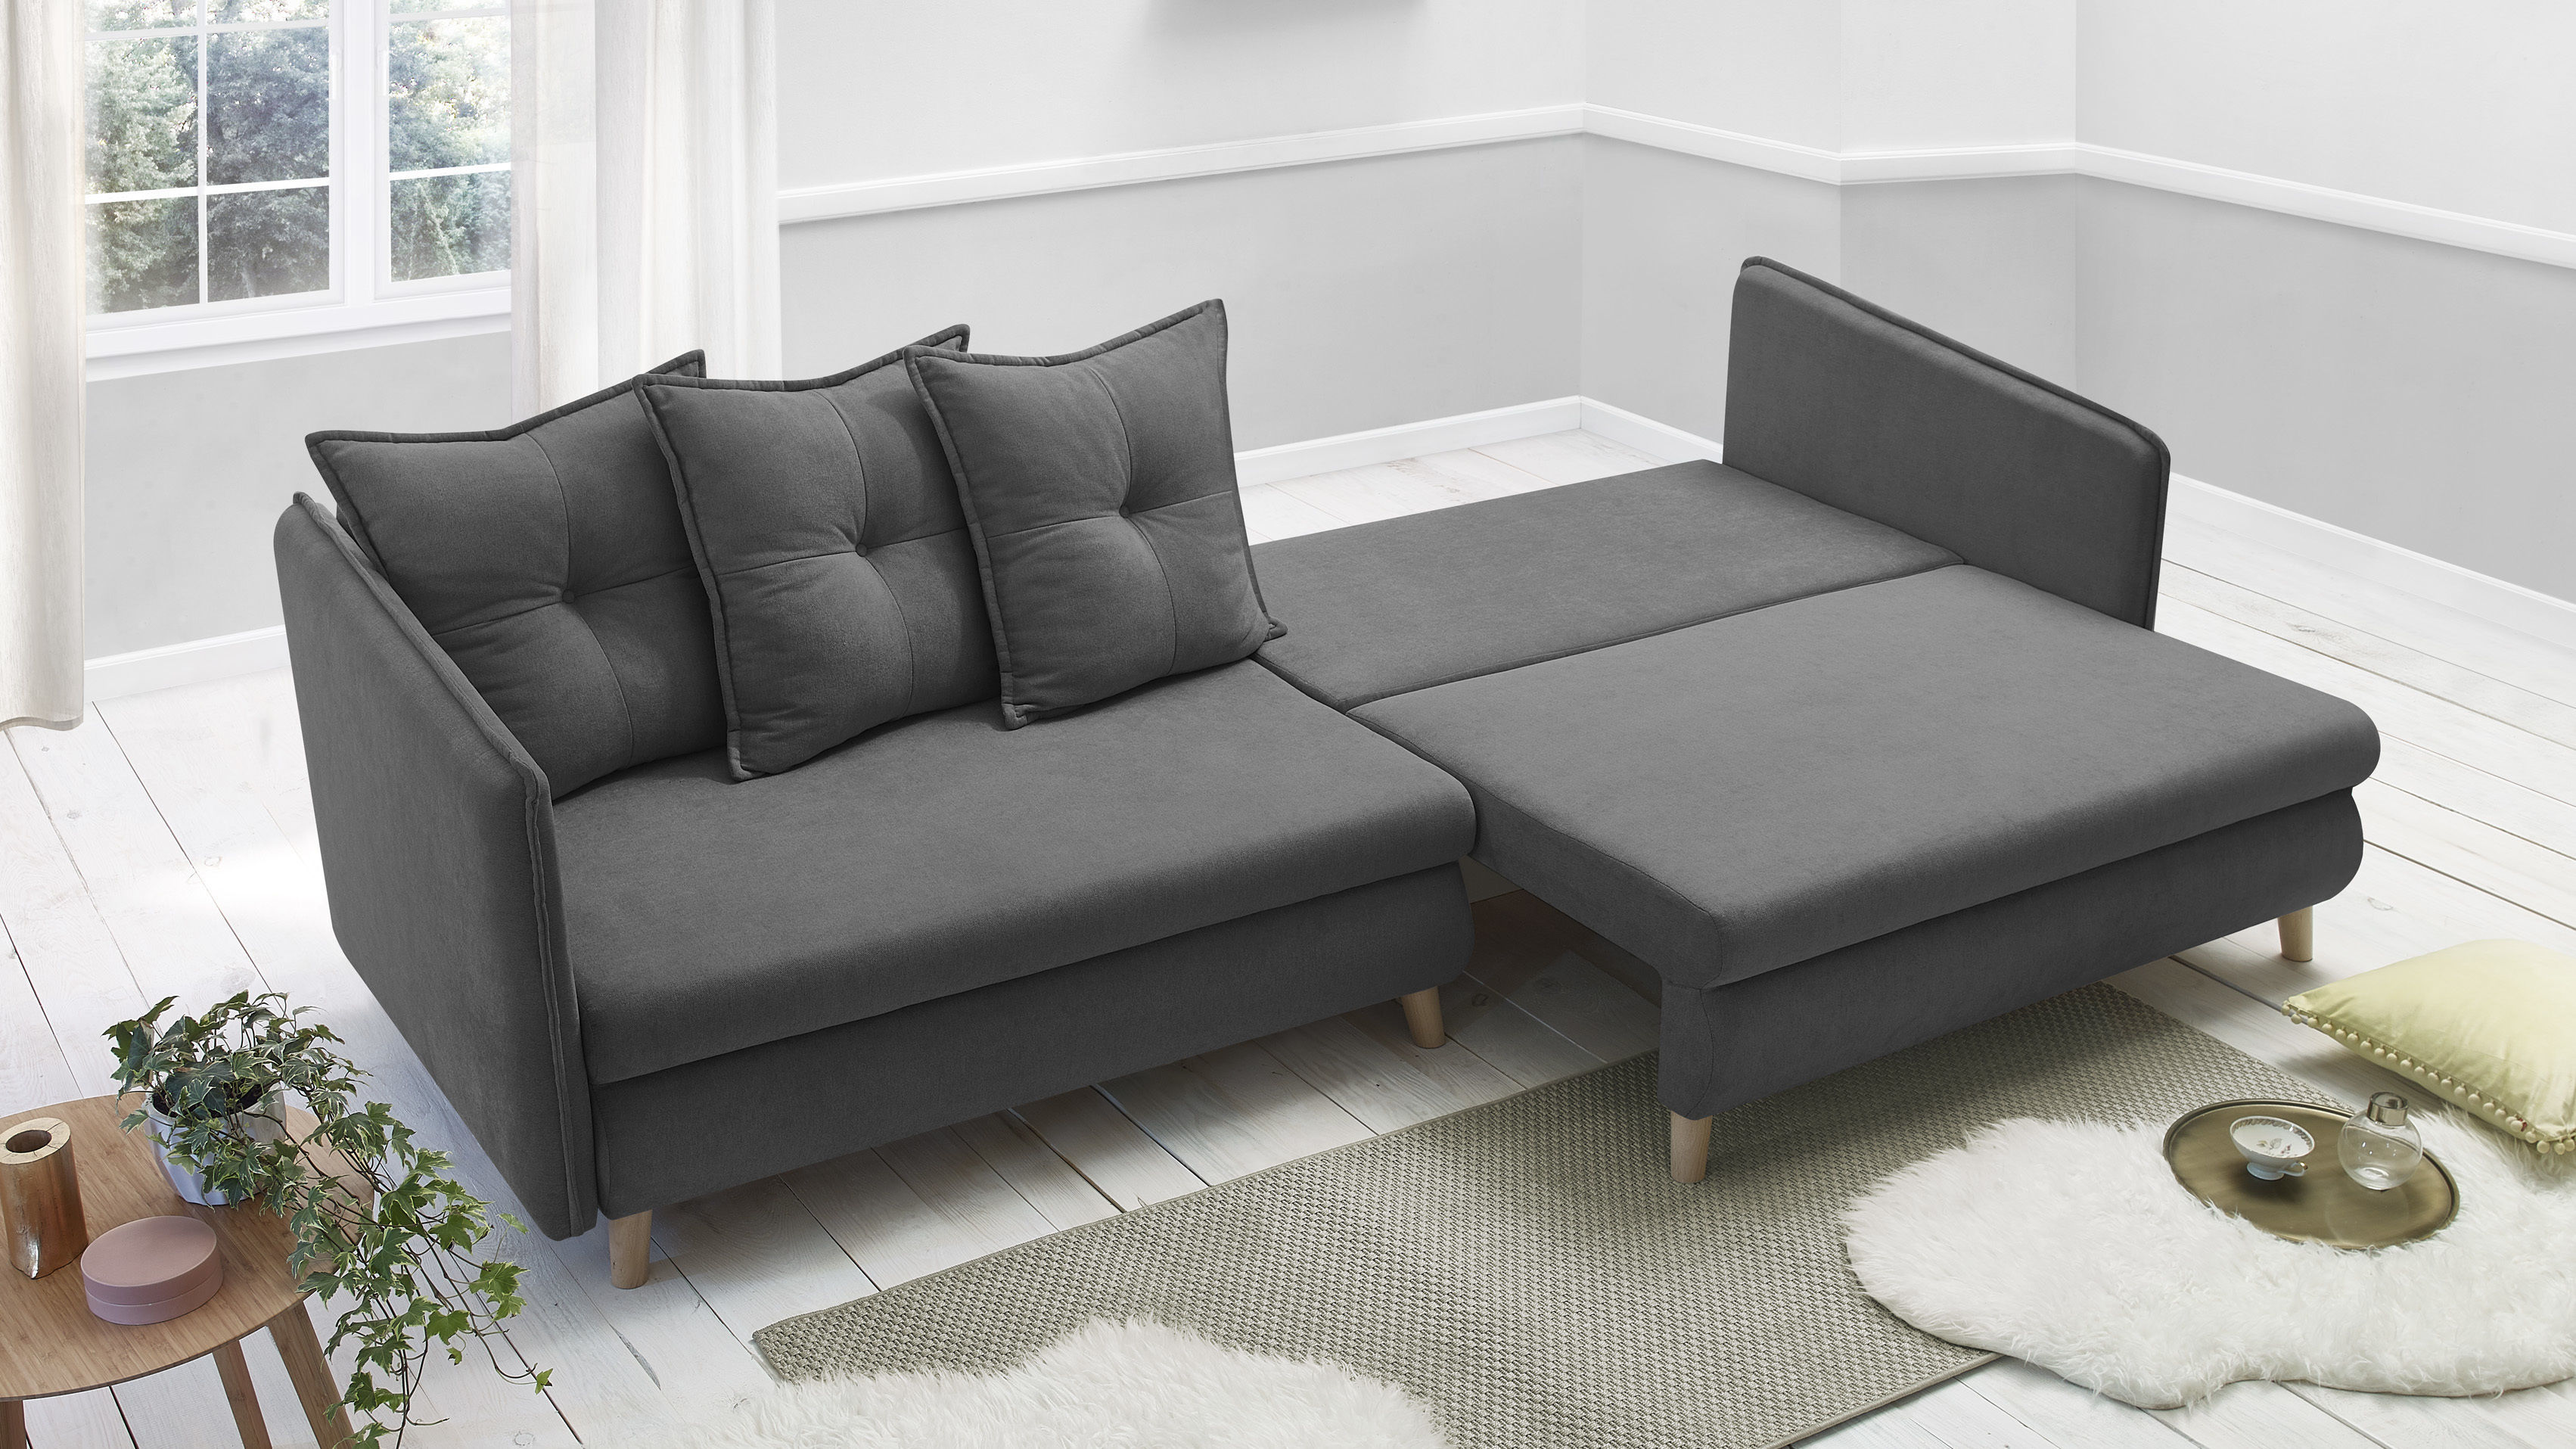 bobochic canap opti sofa 4 places convertible gris fonc 103cm x 77cm x 264cm achat. Black Bedroom Furniture Sets. Home Design Ideas